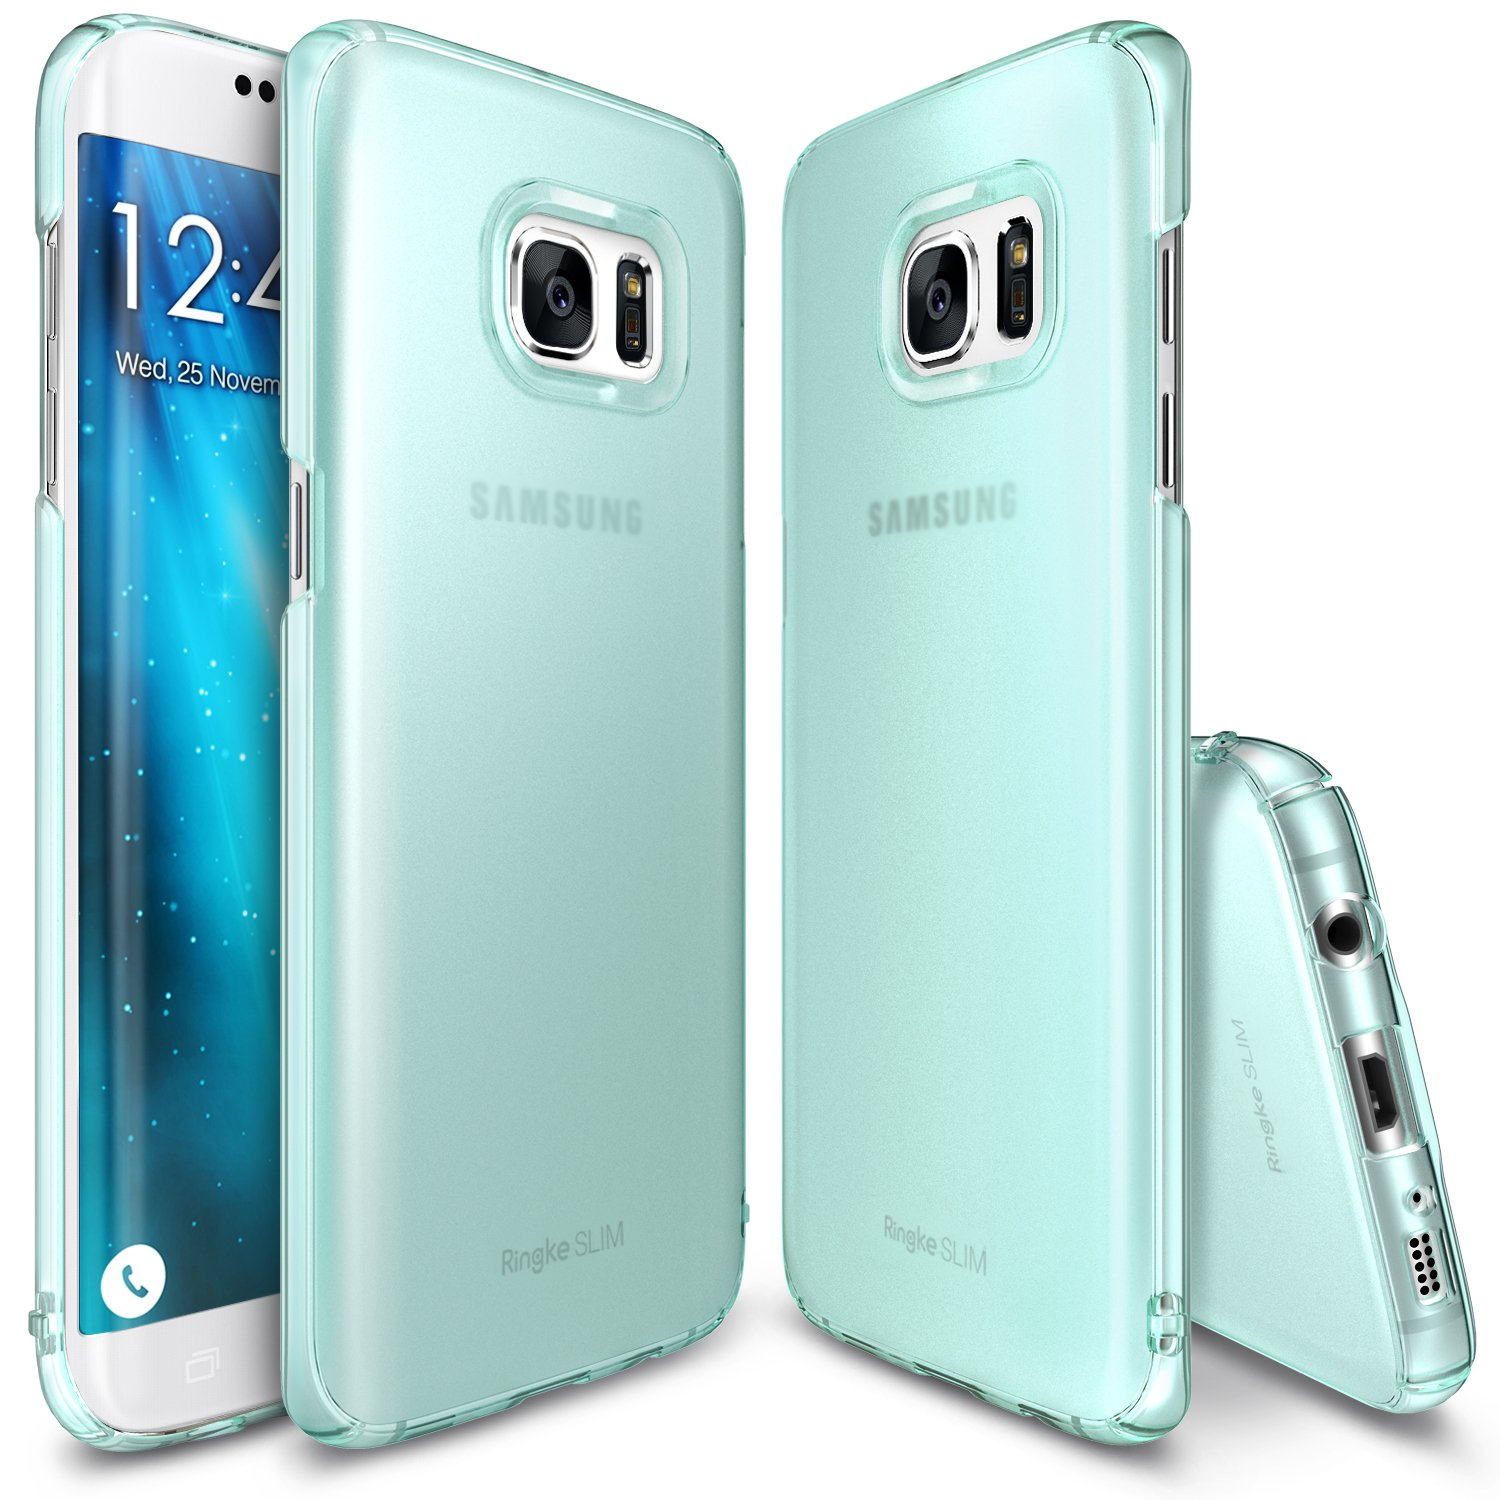 Galaxy S7 Edge Case, Ringke [SLIM] Snug-Fit Slender [Tailored Cutouts] Lightweight & Thin Side to Side Edge Coverage Scratch Resistant PC Hard Skin for Samsung Galaxy S 7 Edge 2016 - Frost Mint